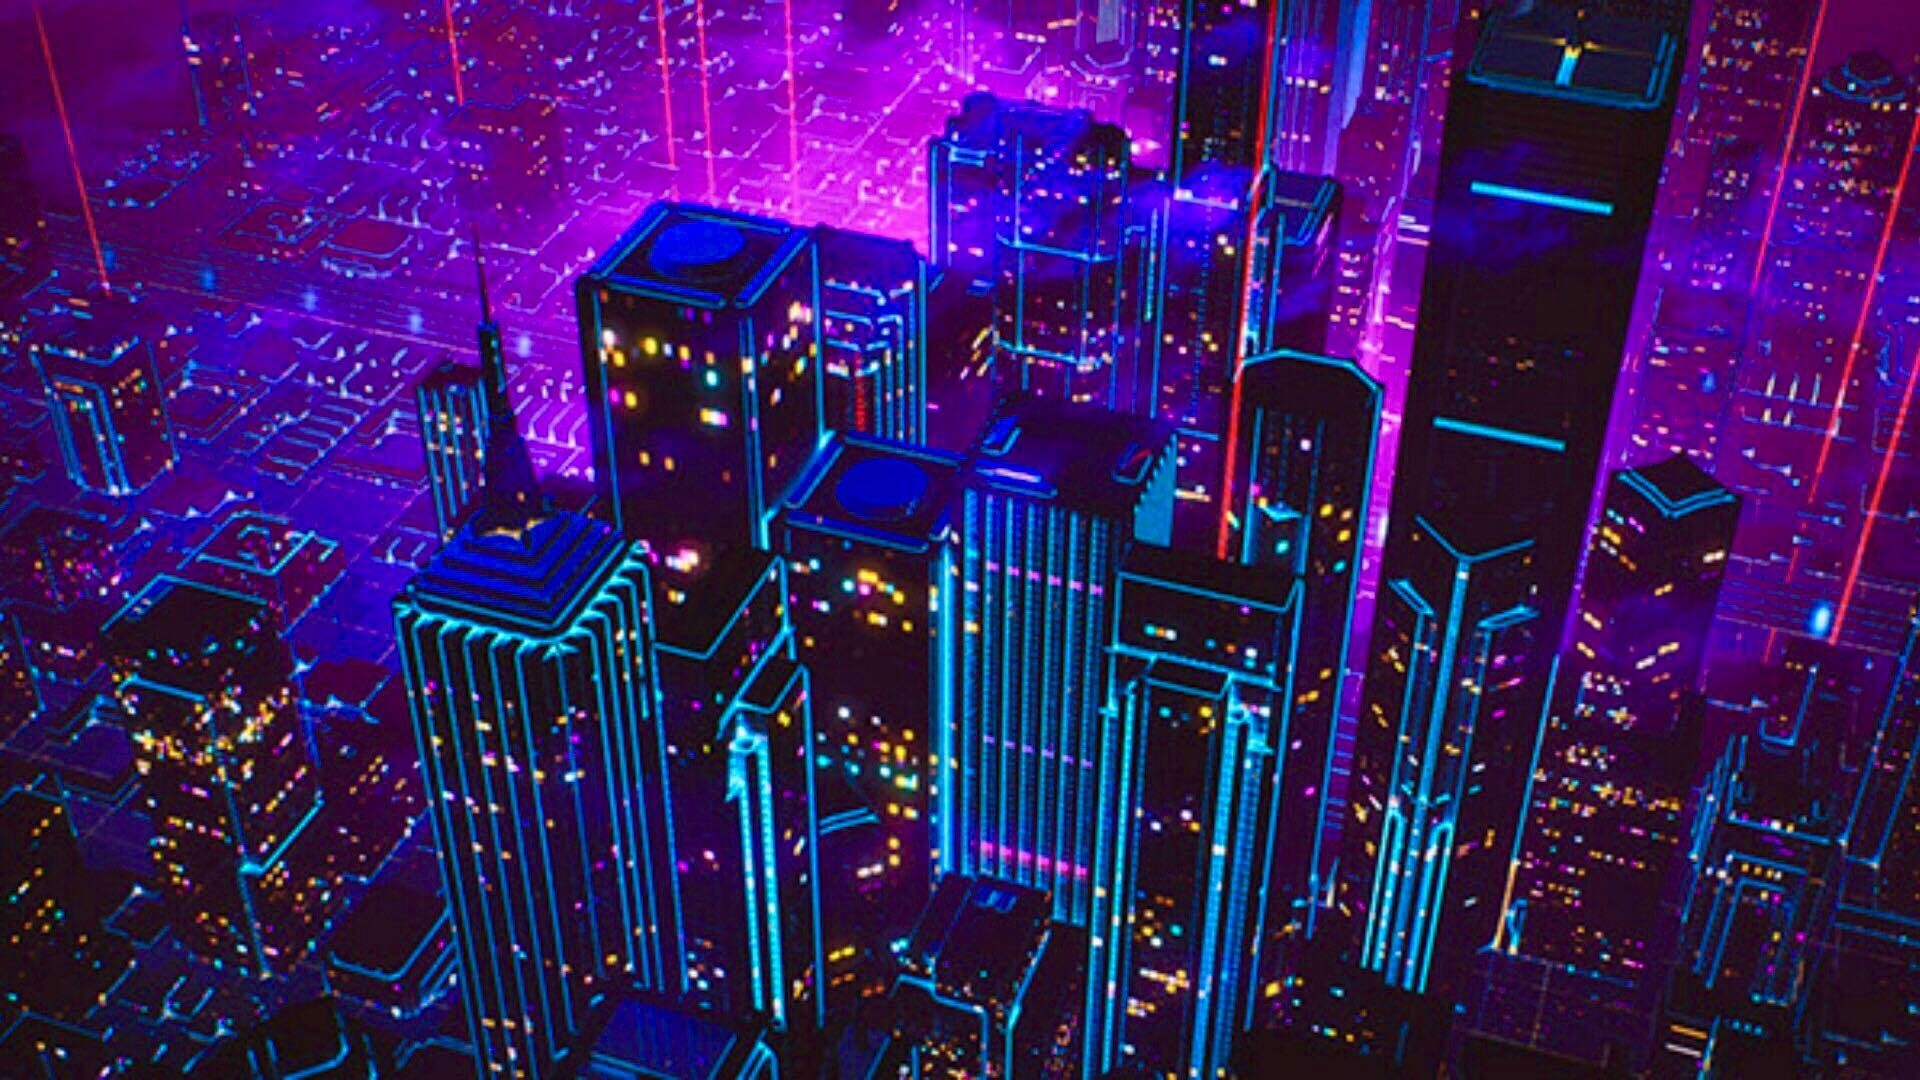 Neon City Wallpapers (21+ images) - WallpaperBoat